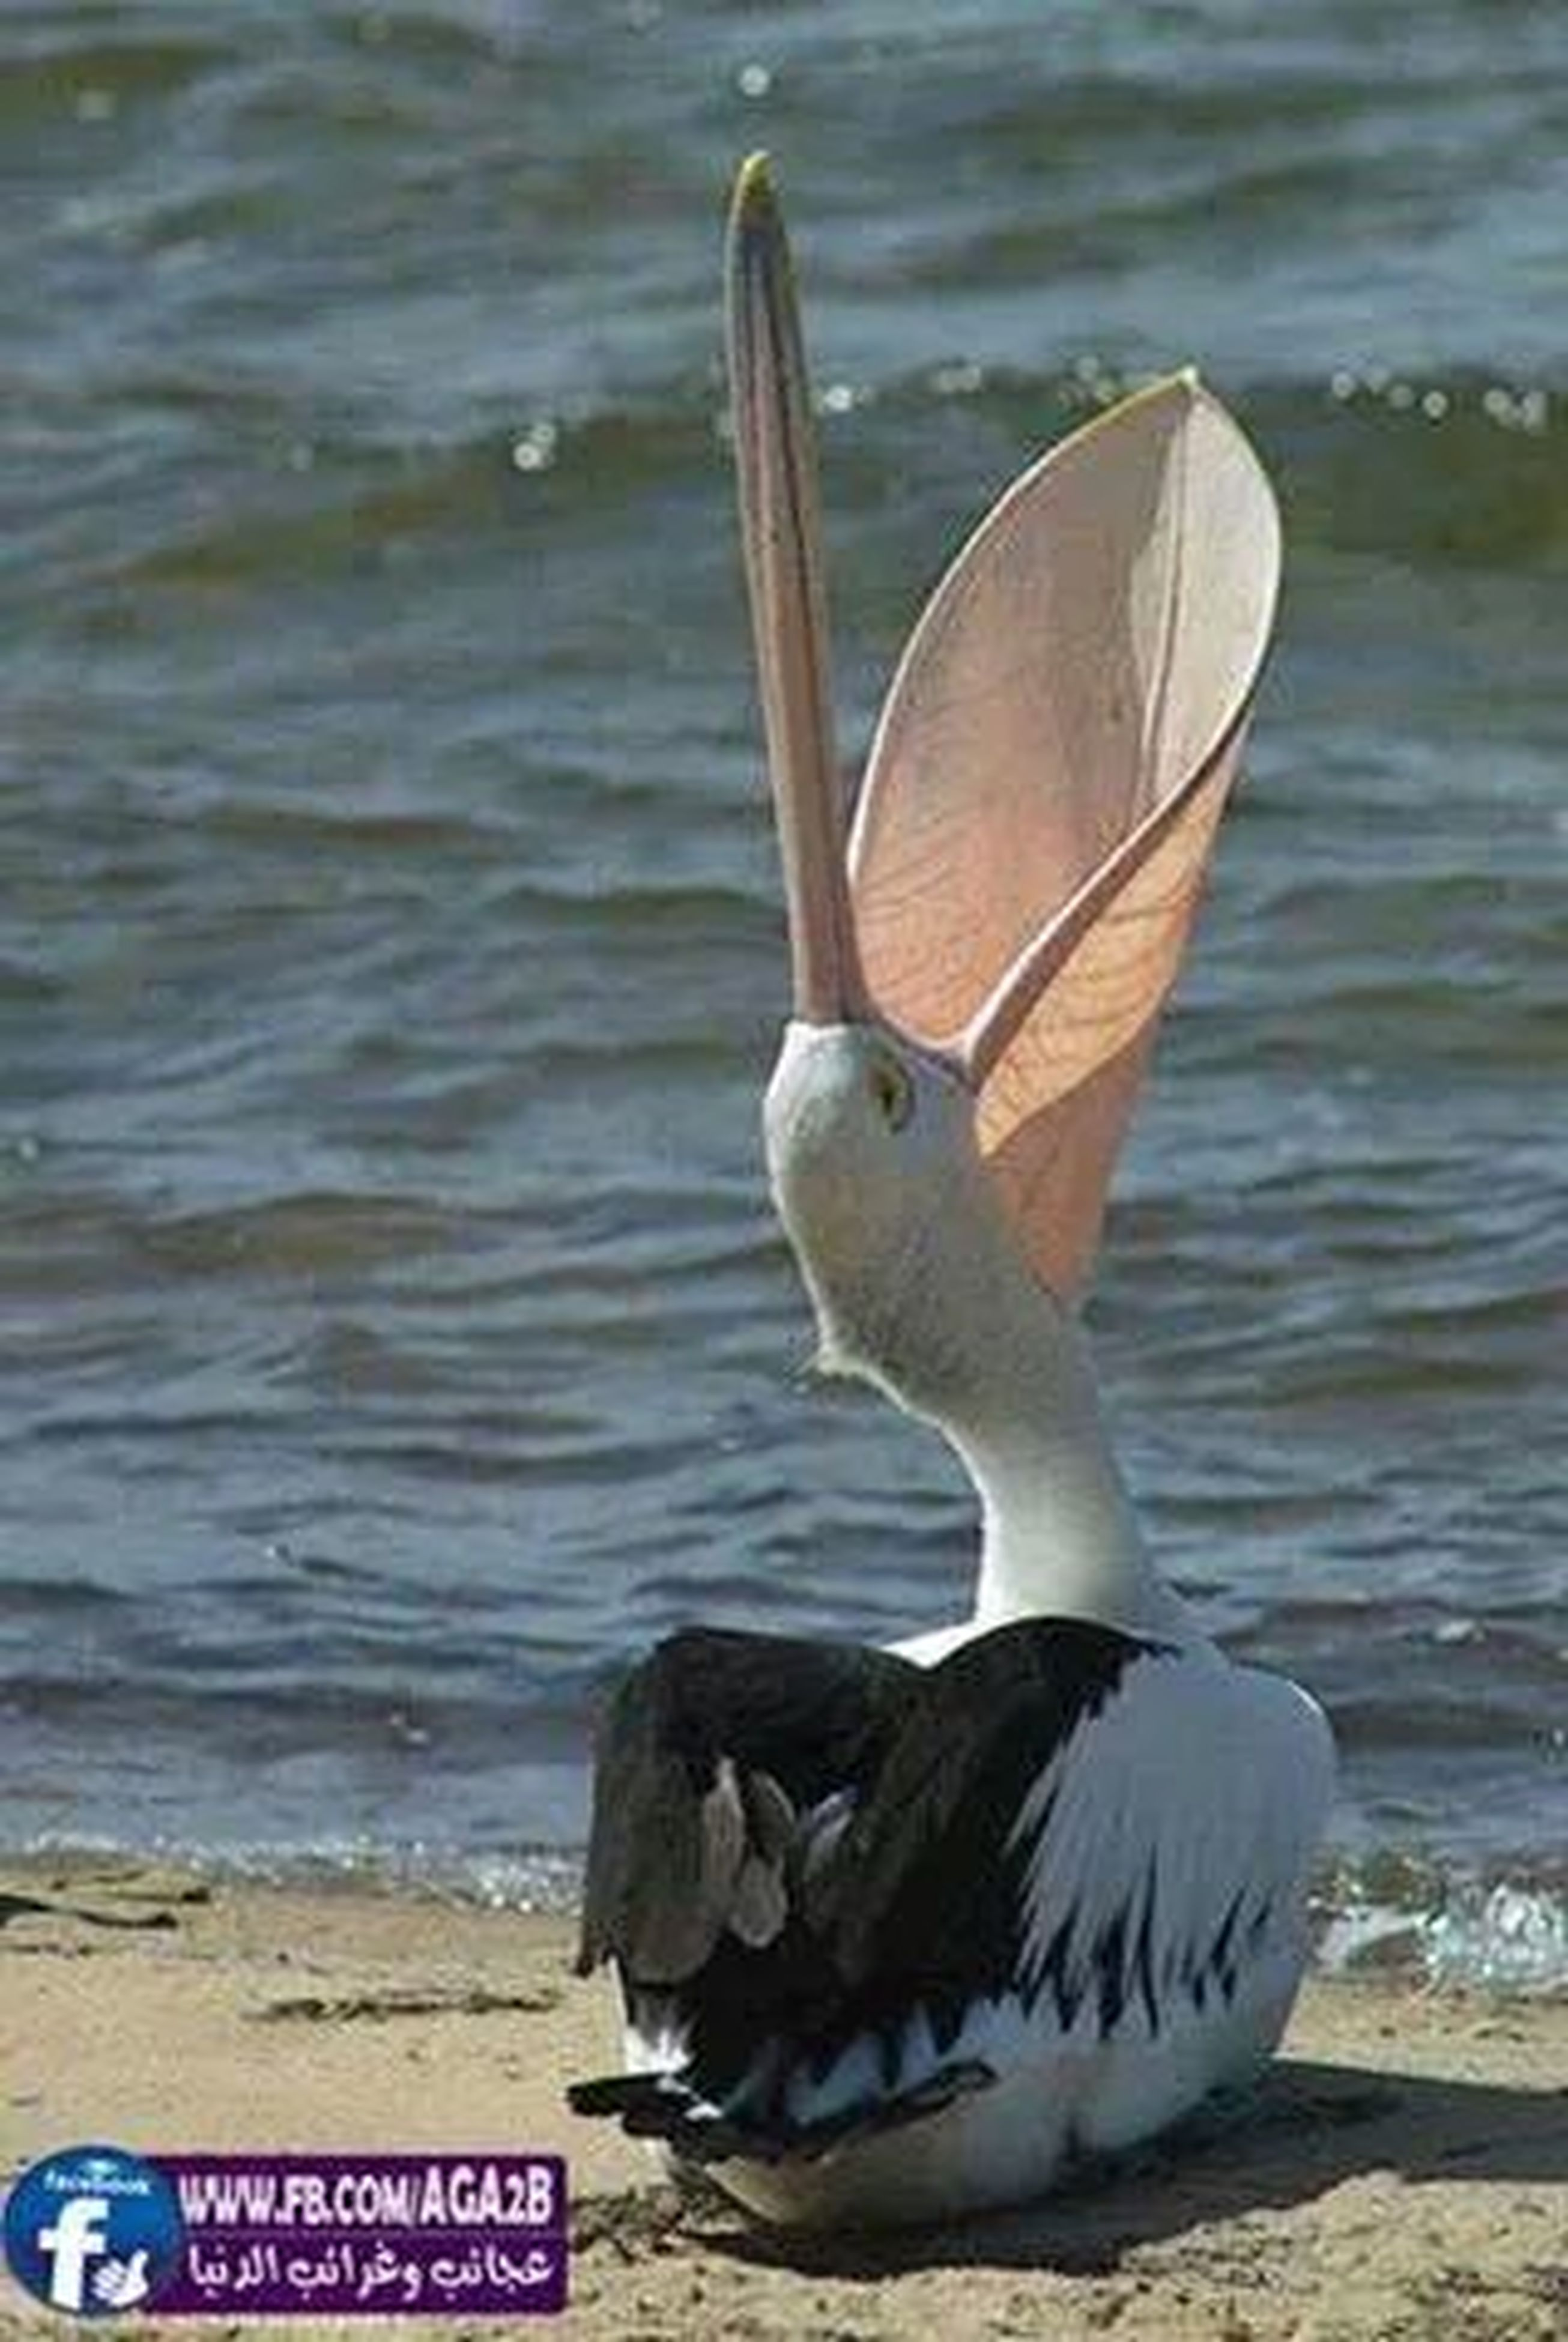 bird, animal themes, animals in the wild, water, wildlife, seagull, one animal, focus on foreground, sea, pelican, perching, beak, nature, close-up, day, outdoors, side view, no people, text, sea bird